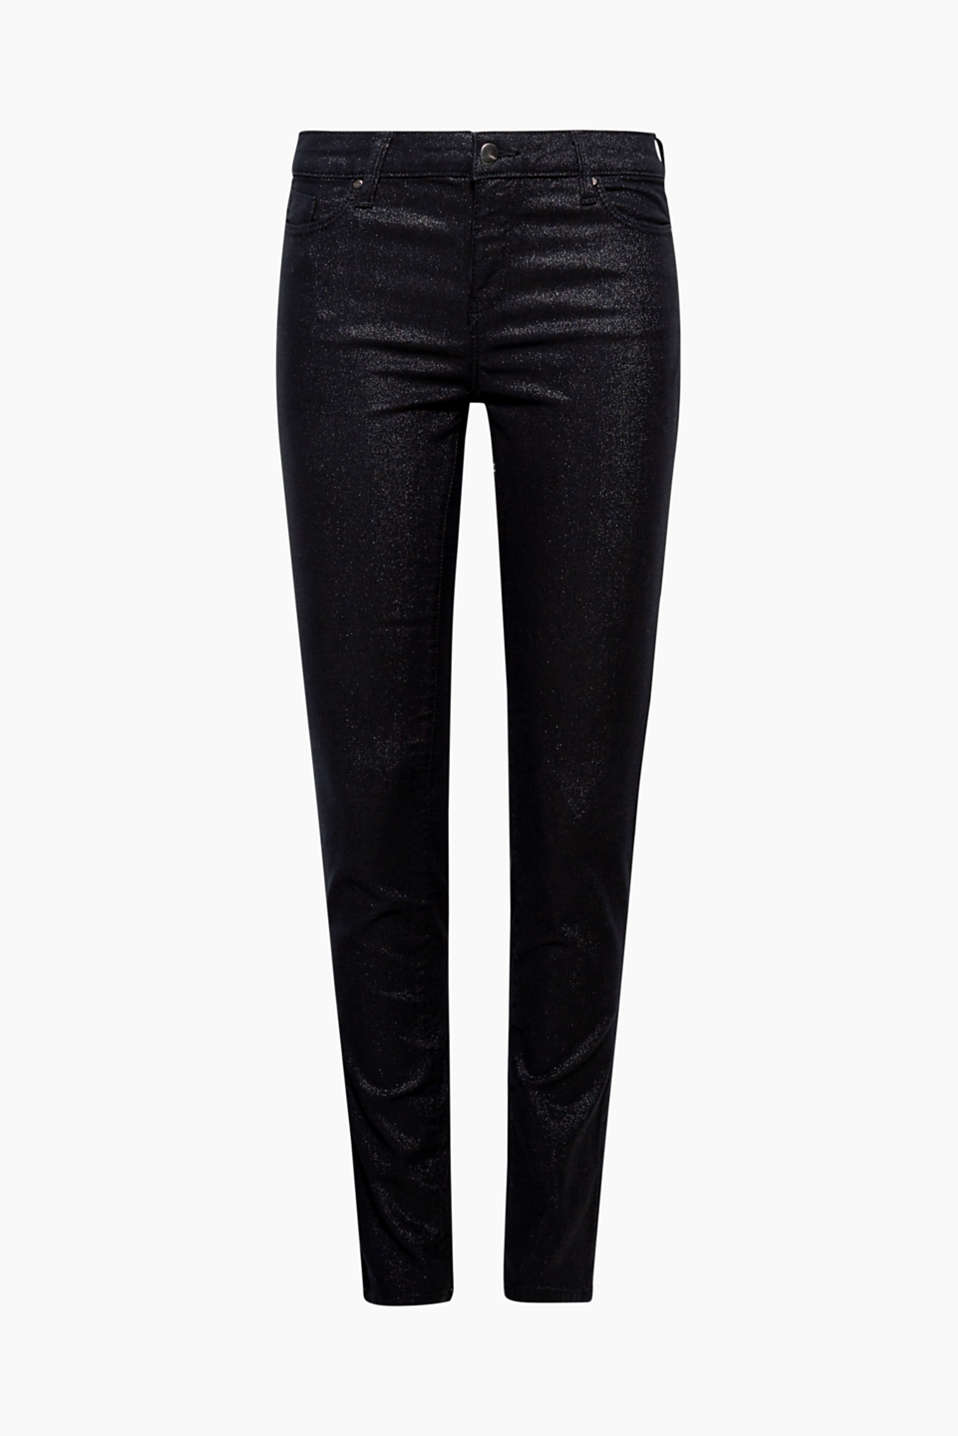 Denim can look really classy: like these skinny stretch jeans in a five pocket design with an all-over, glittery finish!